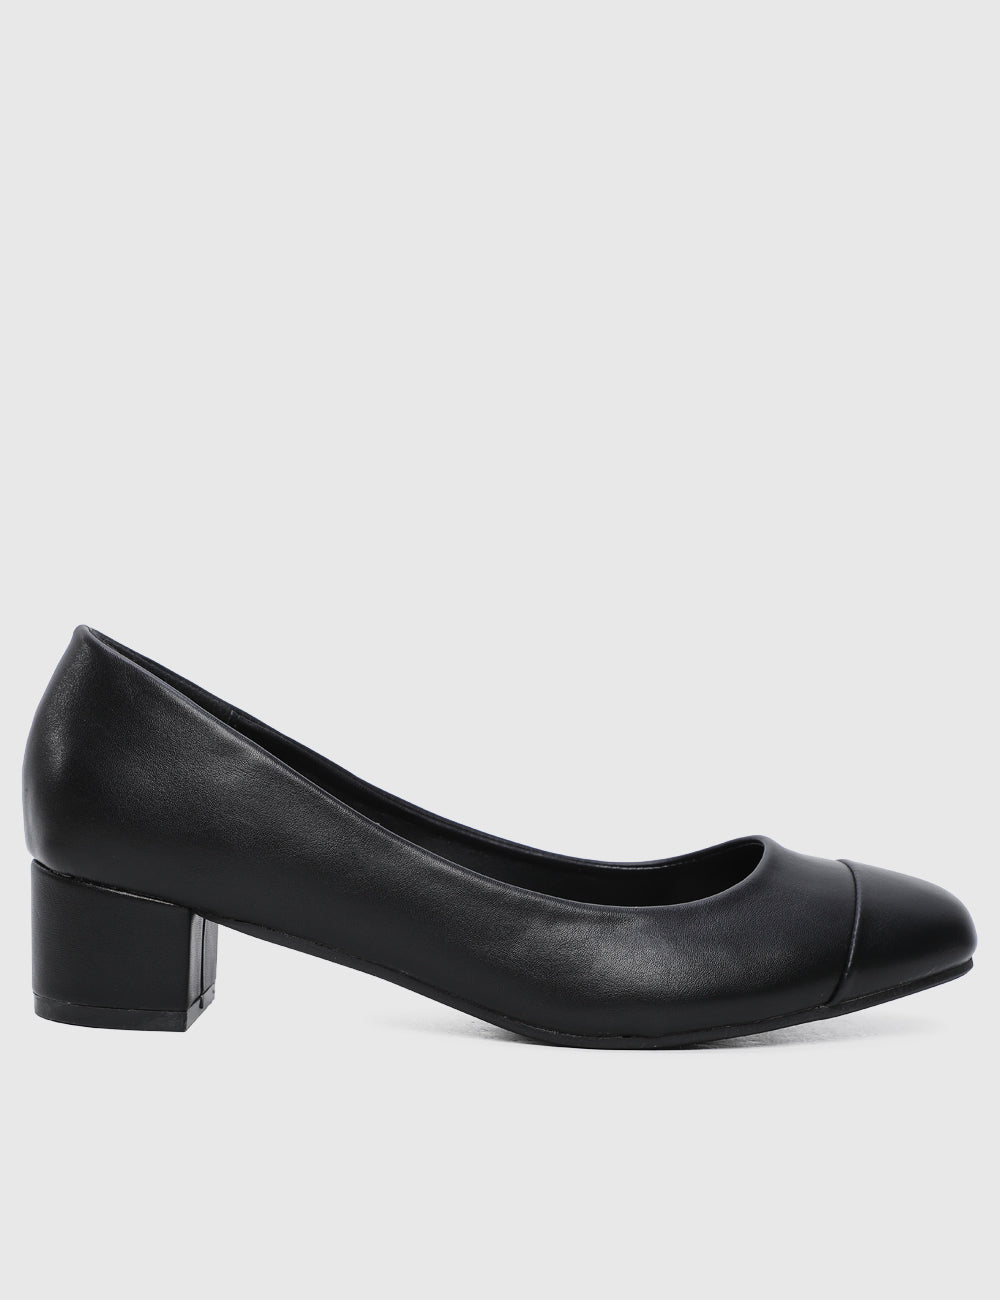 City Girl Rounded Toe Heels (Black)